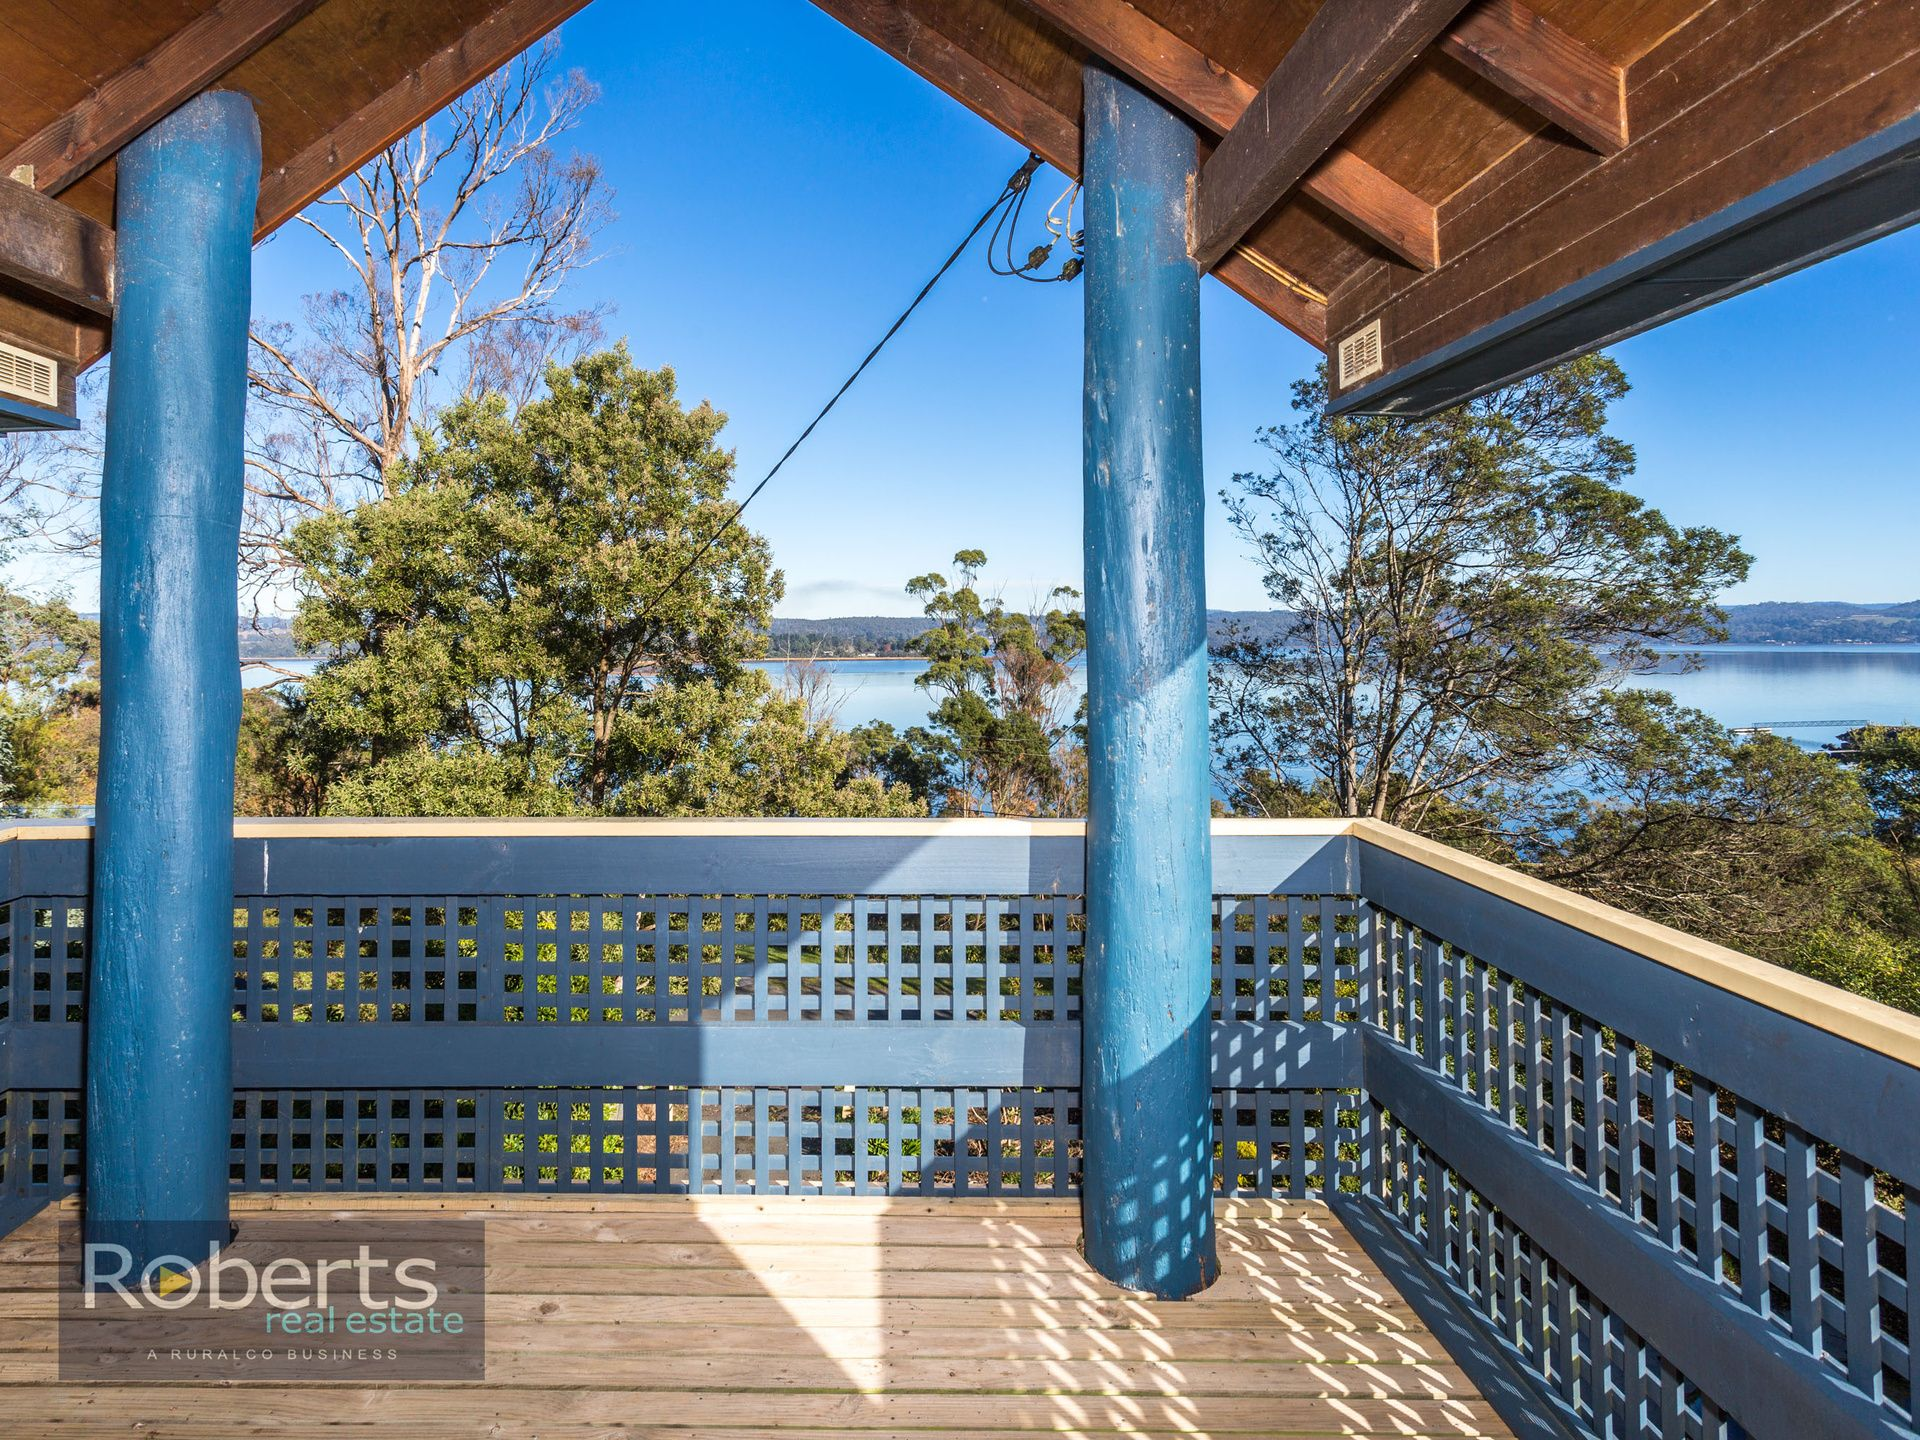 Sold property: $259,500 for 31 Leam Road - Hillwood , TAS 7252